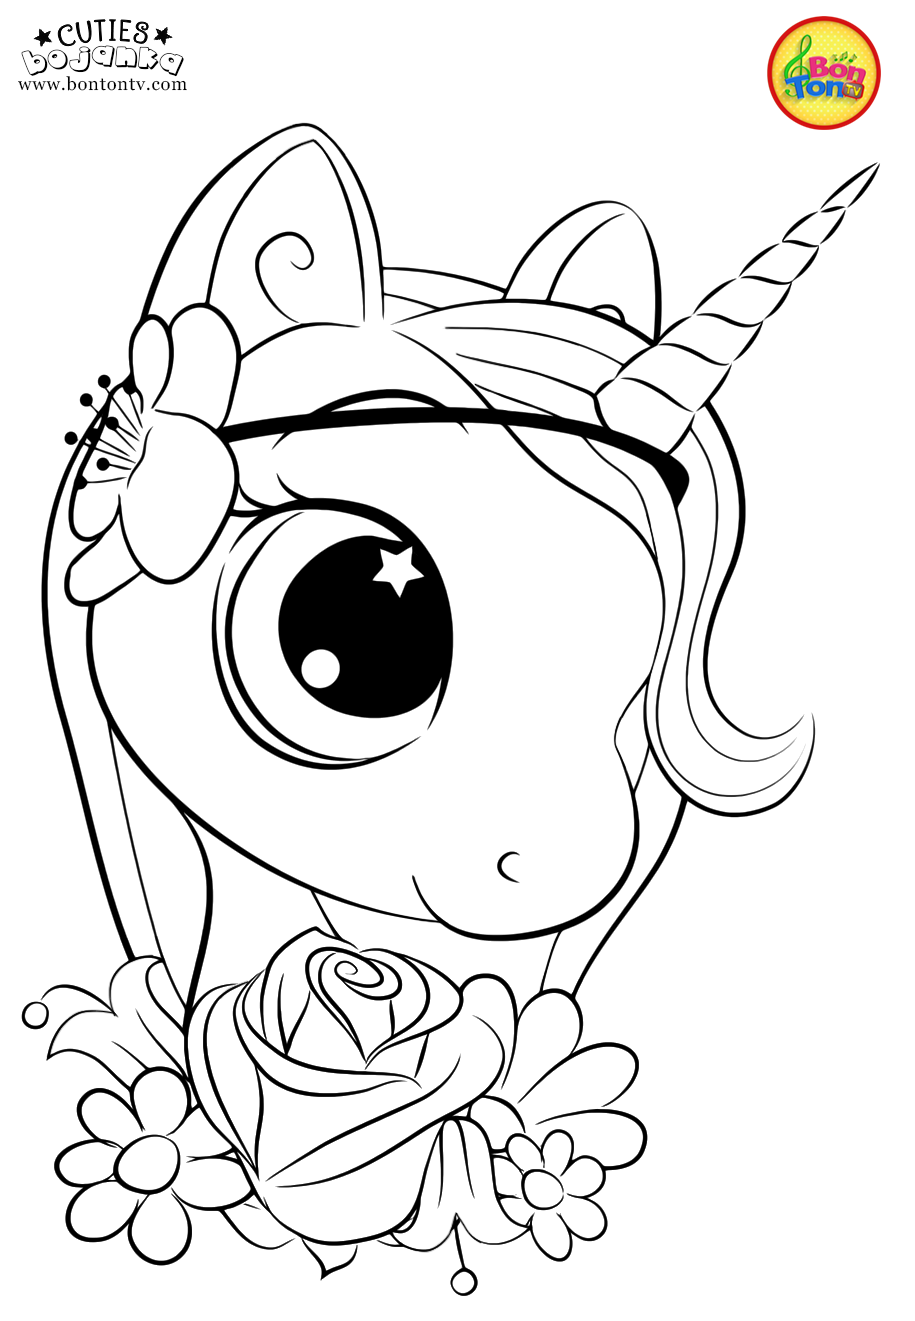 Free Printable Coloring Pages Cute Animals Tips